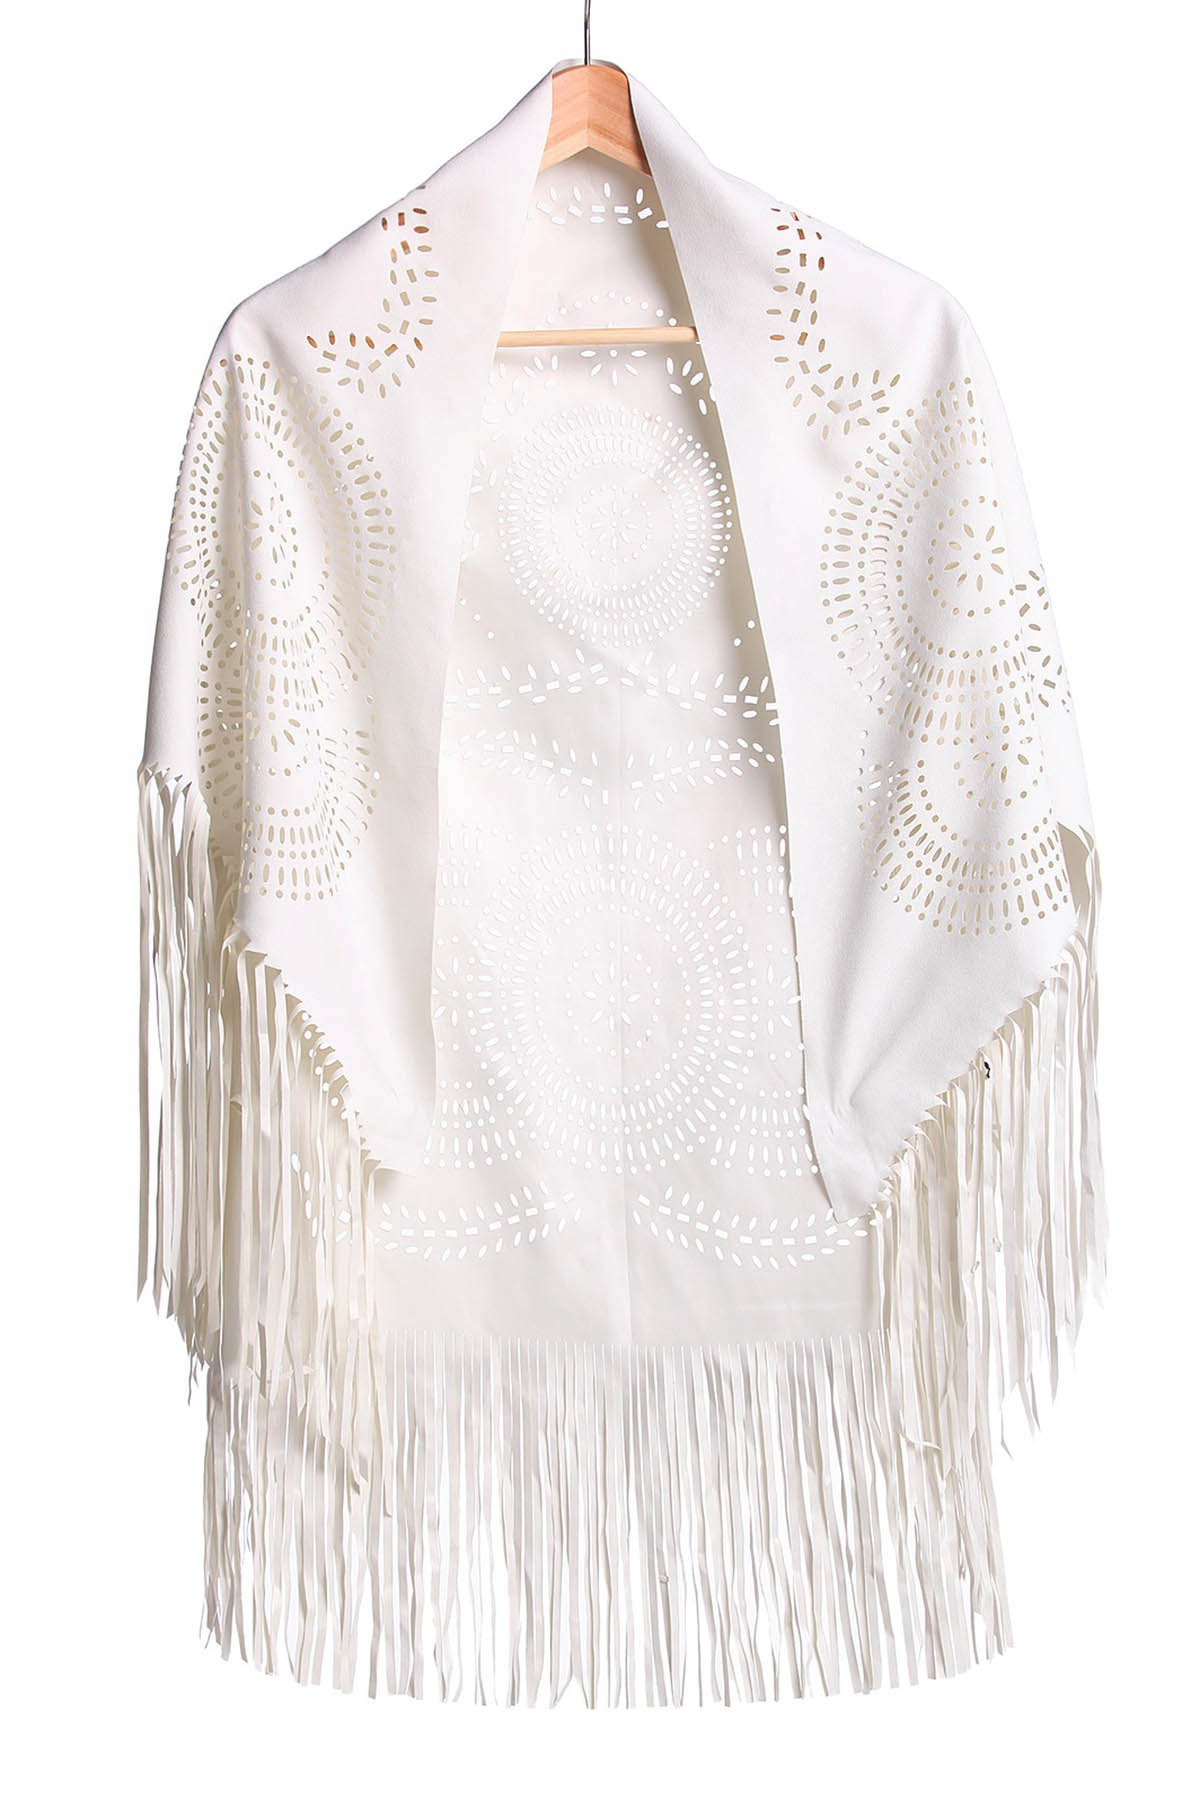 Stylish Half Sleeve Fringed Hollow Out Womens BlouseWomen<br><br><br>Size: S<br>Color: OFF-WHITE